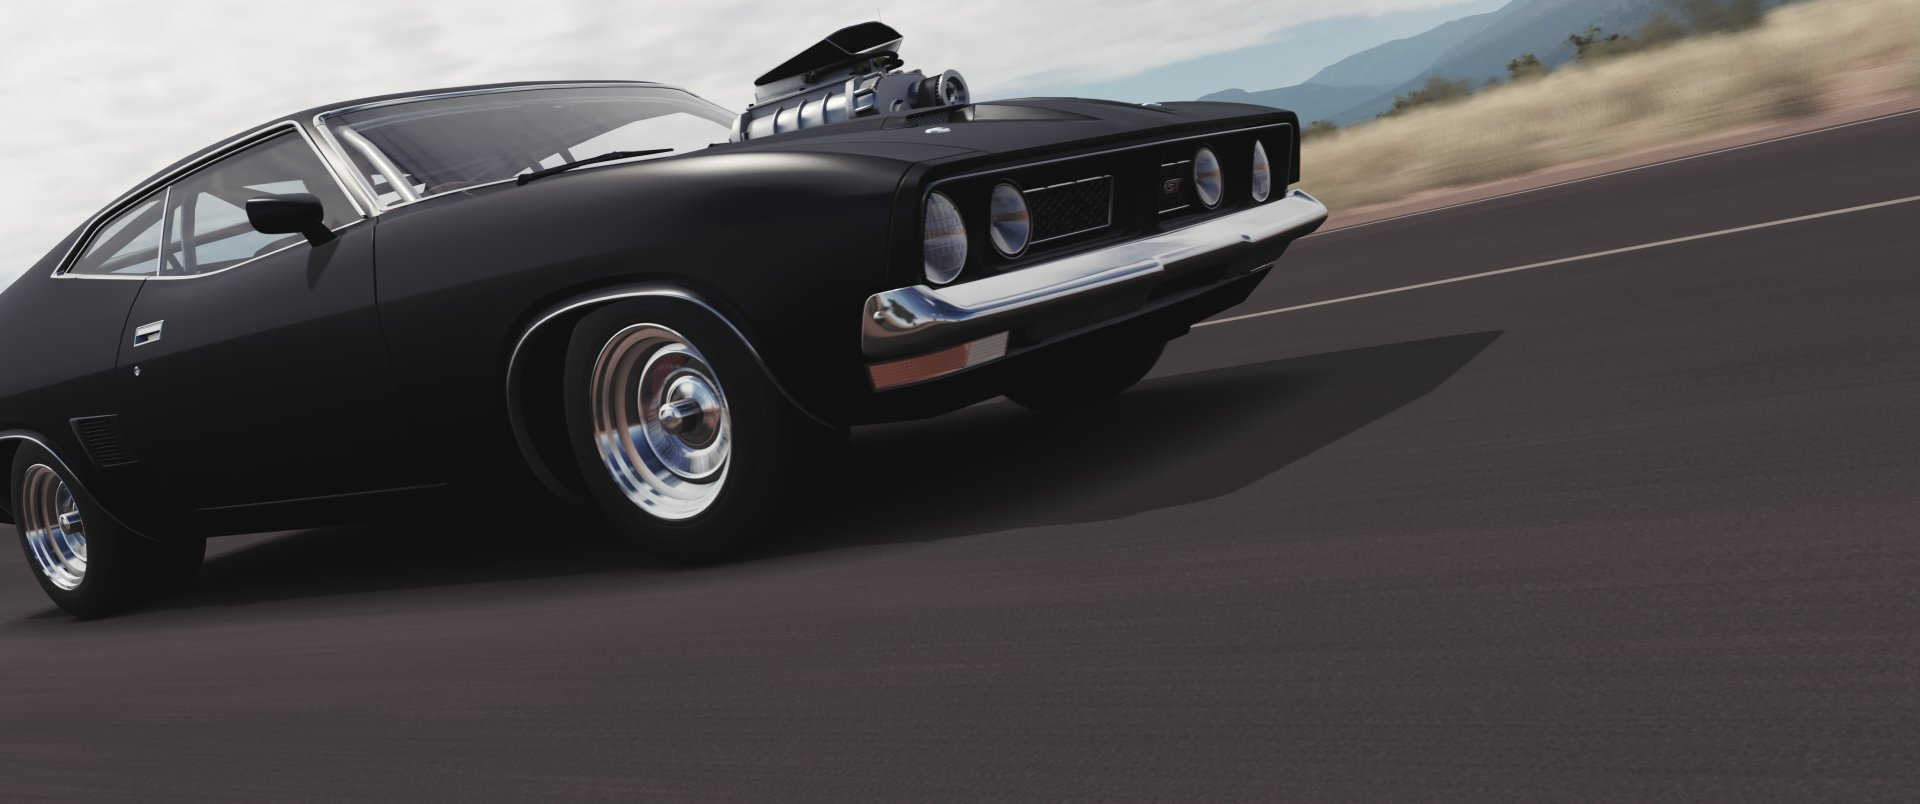 Fast And Furious 7 Cars Wallpapers Download Forza Horizon 3 4k Ultra Hd Wallpaper Background Image